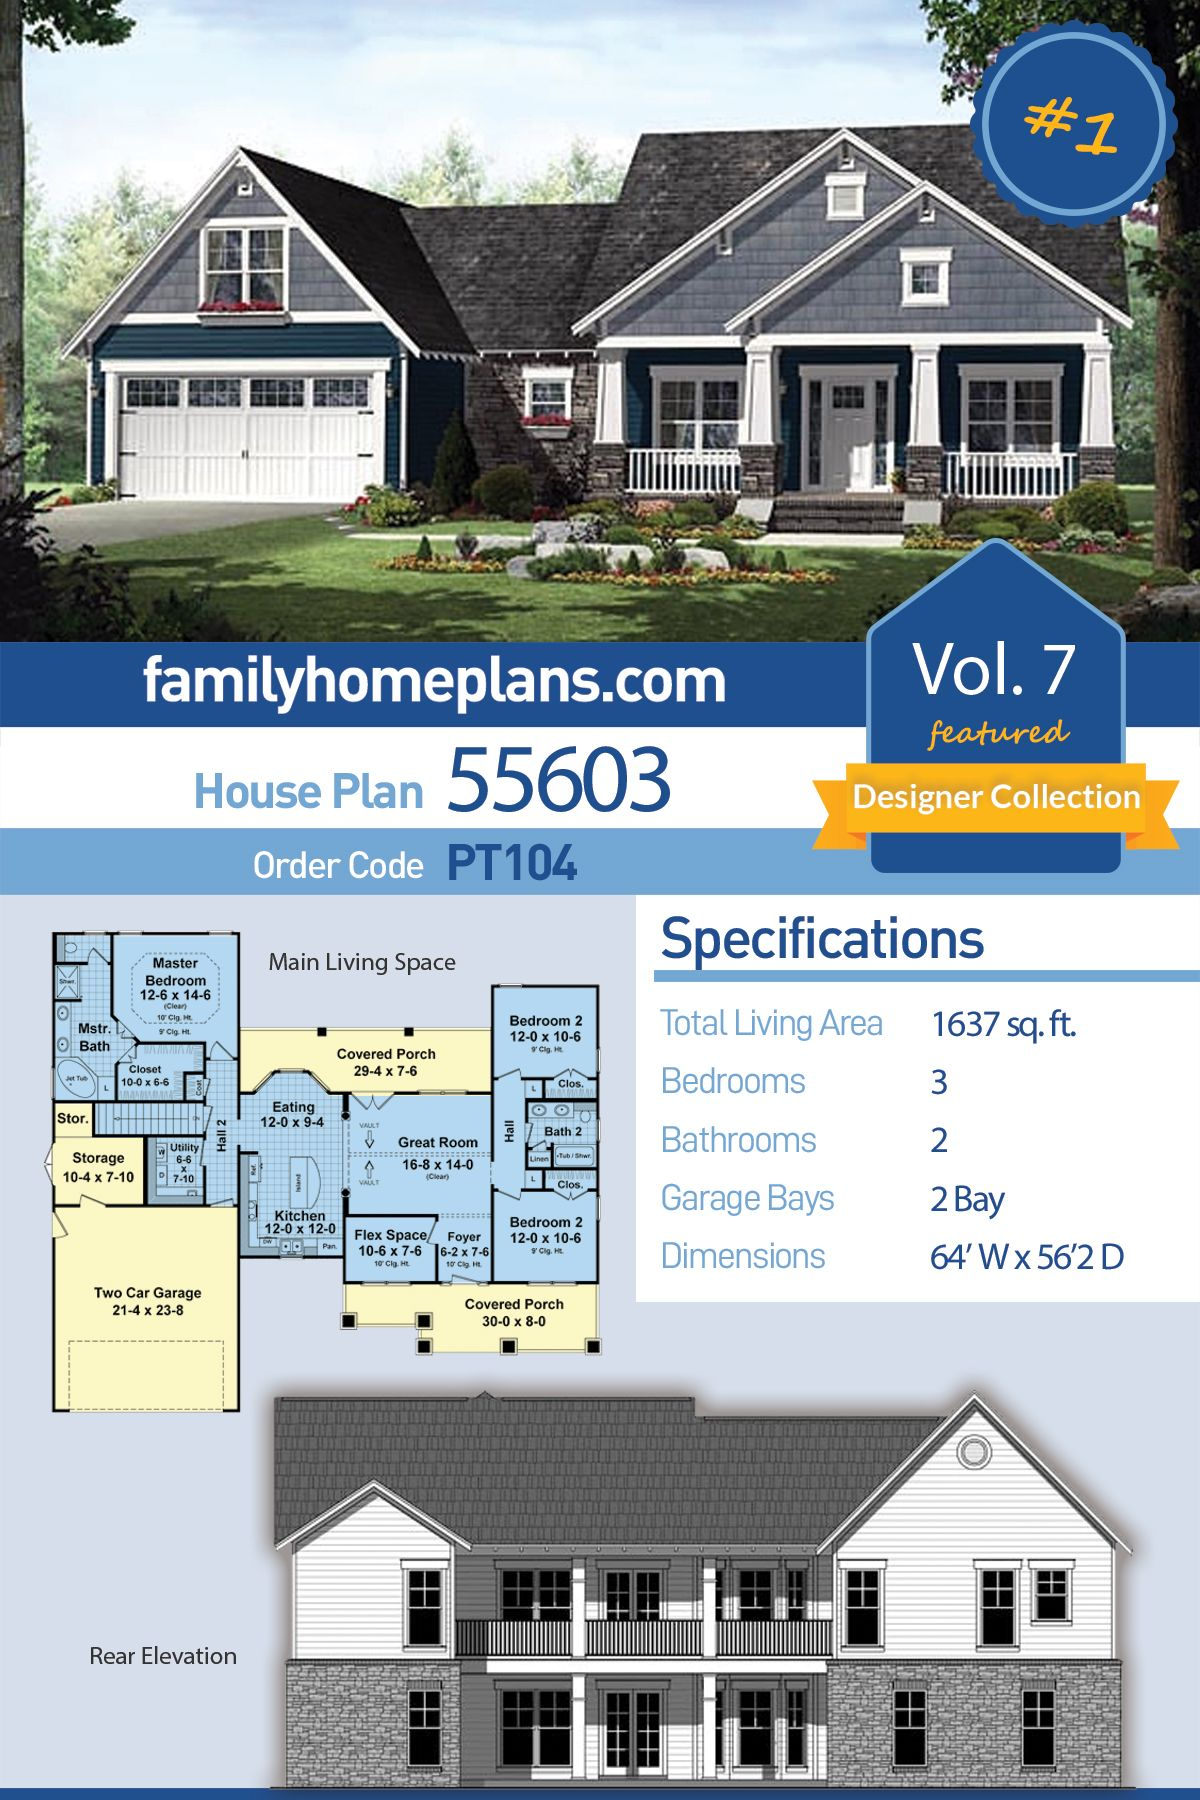 Craftsman Style House Plan 55603 With 3 Bed 2 Bath 2 Car Garage Craftsman Style House Plans Craftsman House Plans Basement House Plans